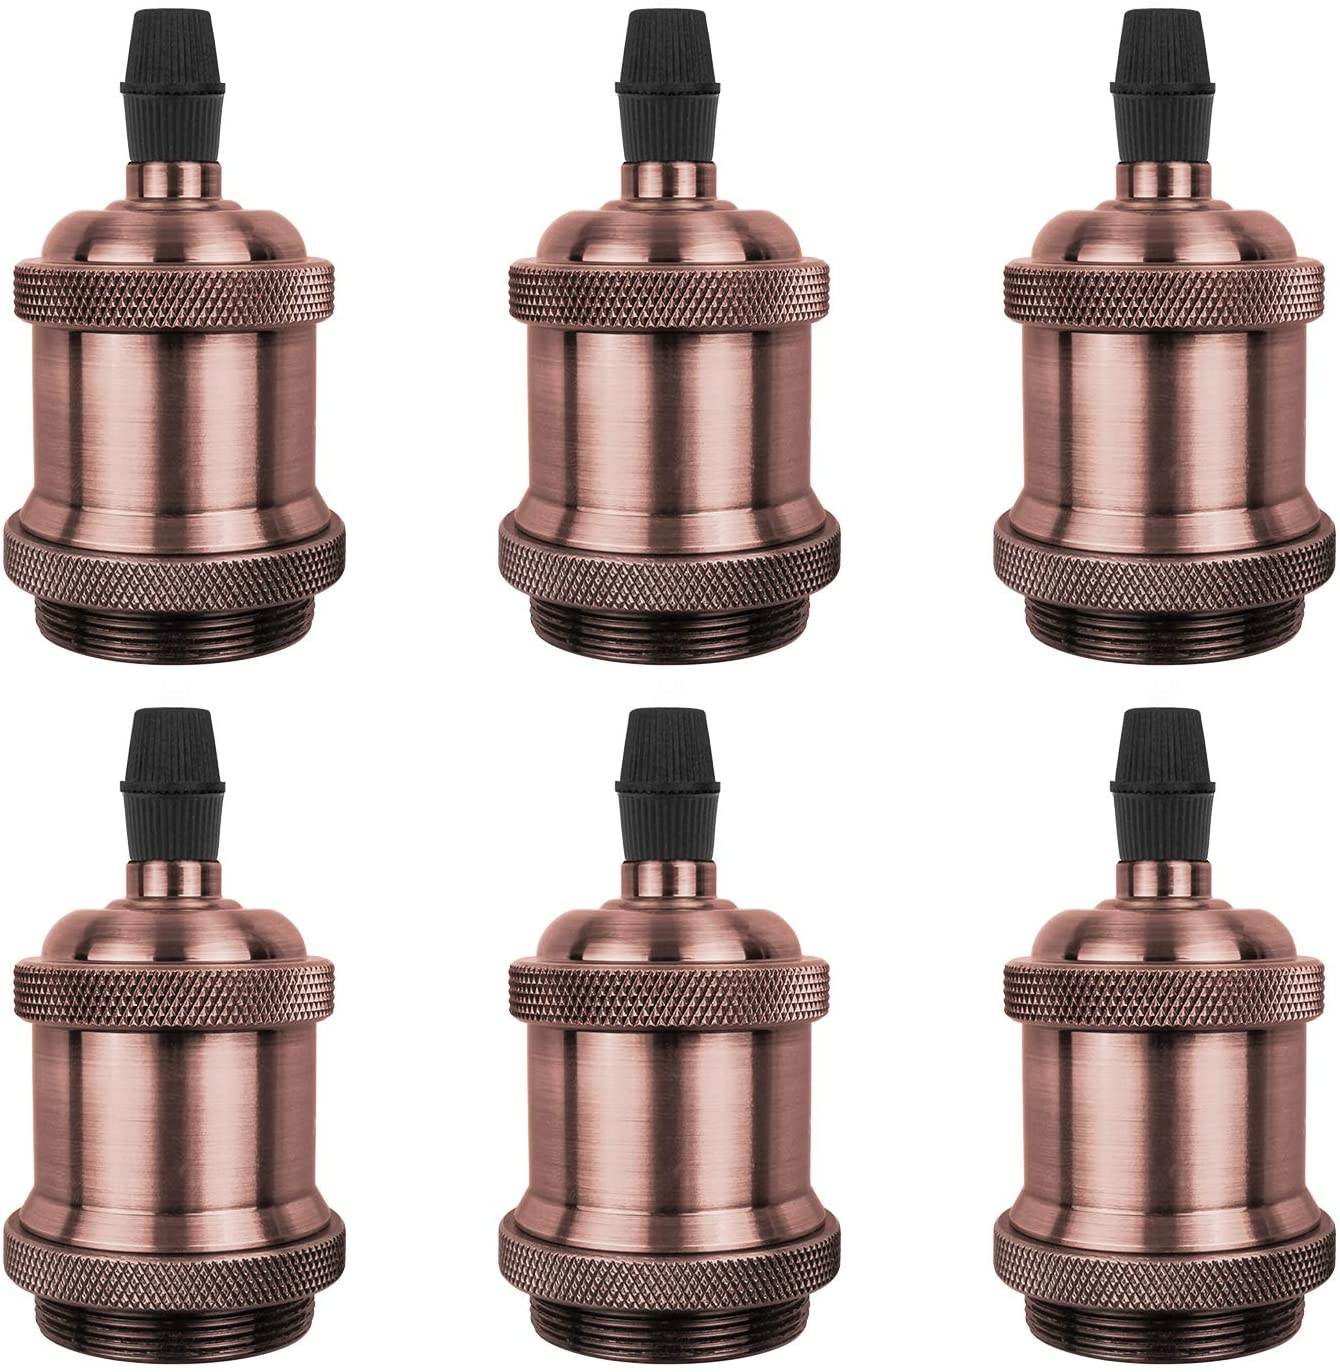 DiCUNO Vintage E26 Lamp Socket, Edison Retro Pendant Lamp Holder, Industrial and Decorative for DIY Lighting, 600℃ Heat Resistant Red Copper Color 6 Packages